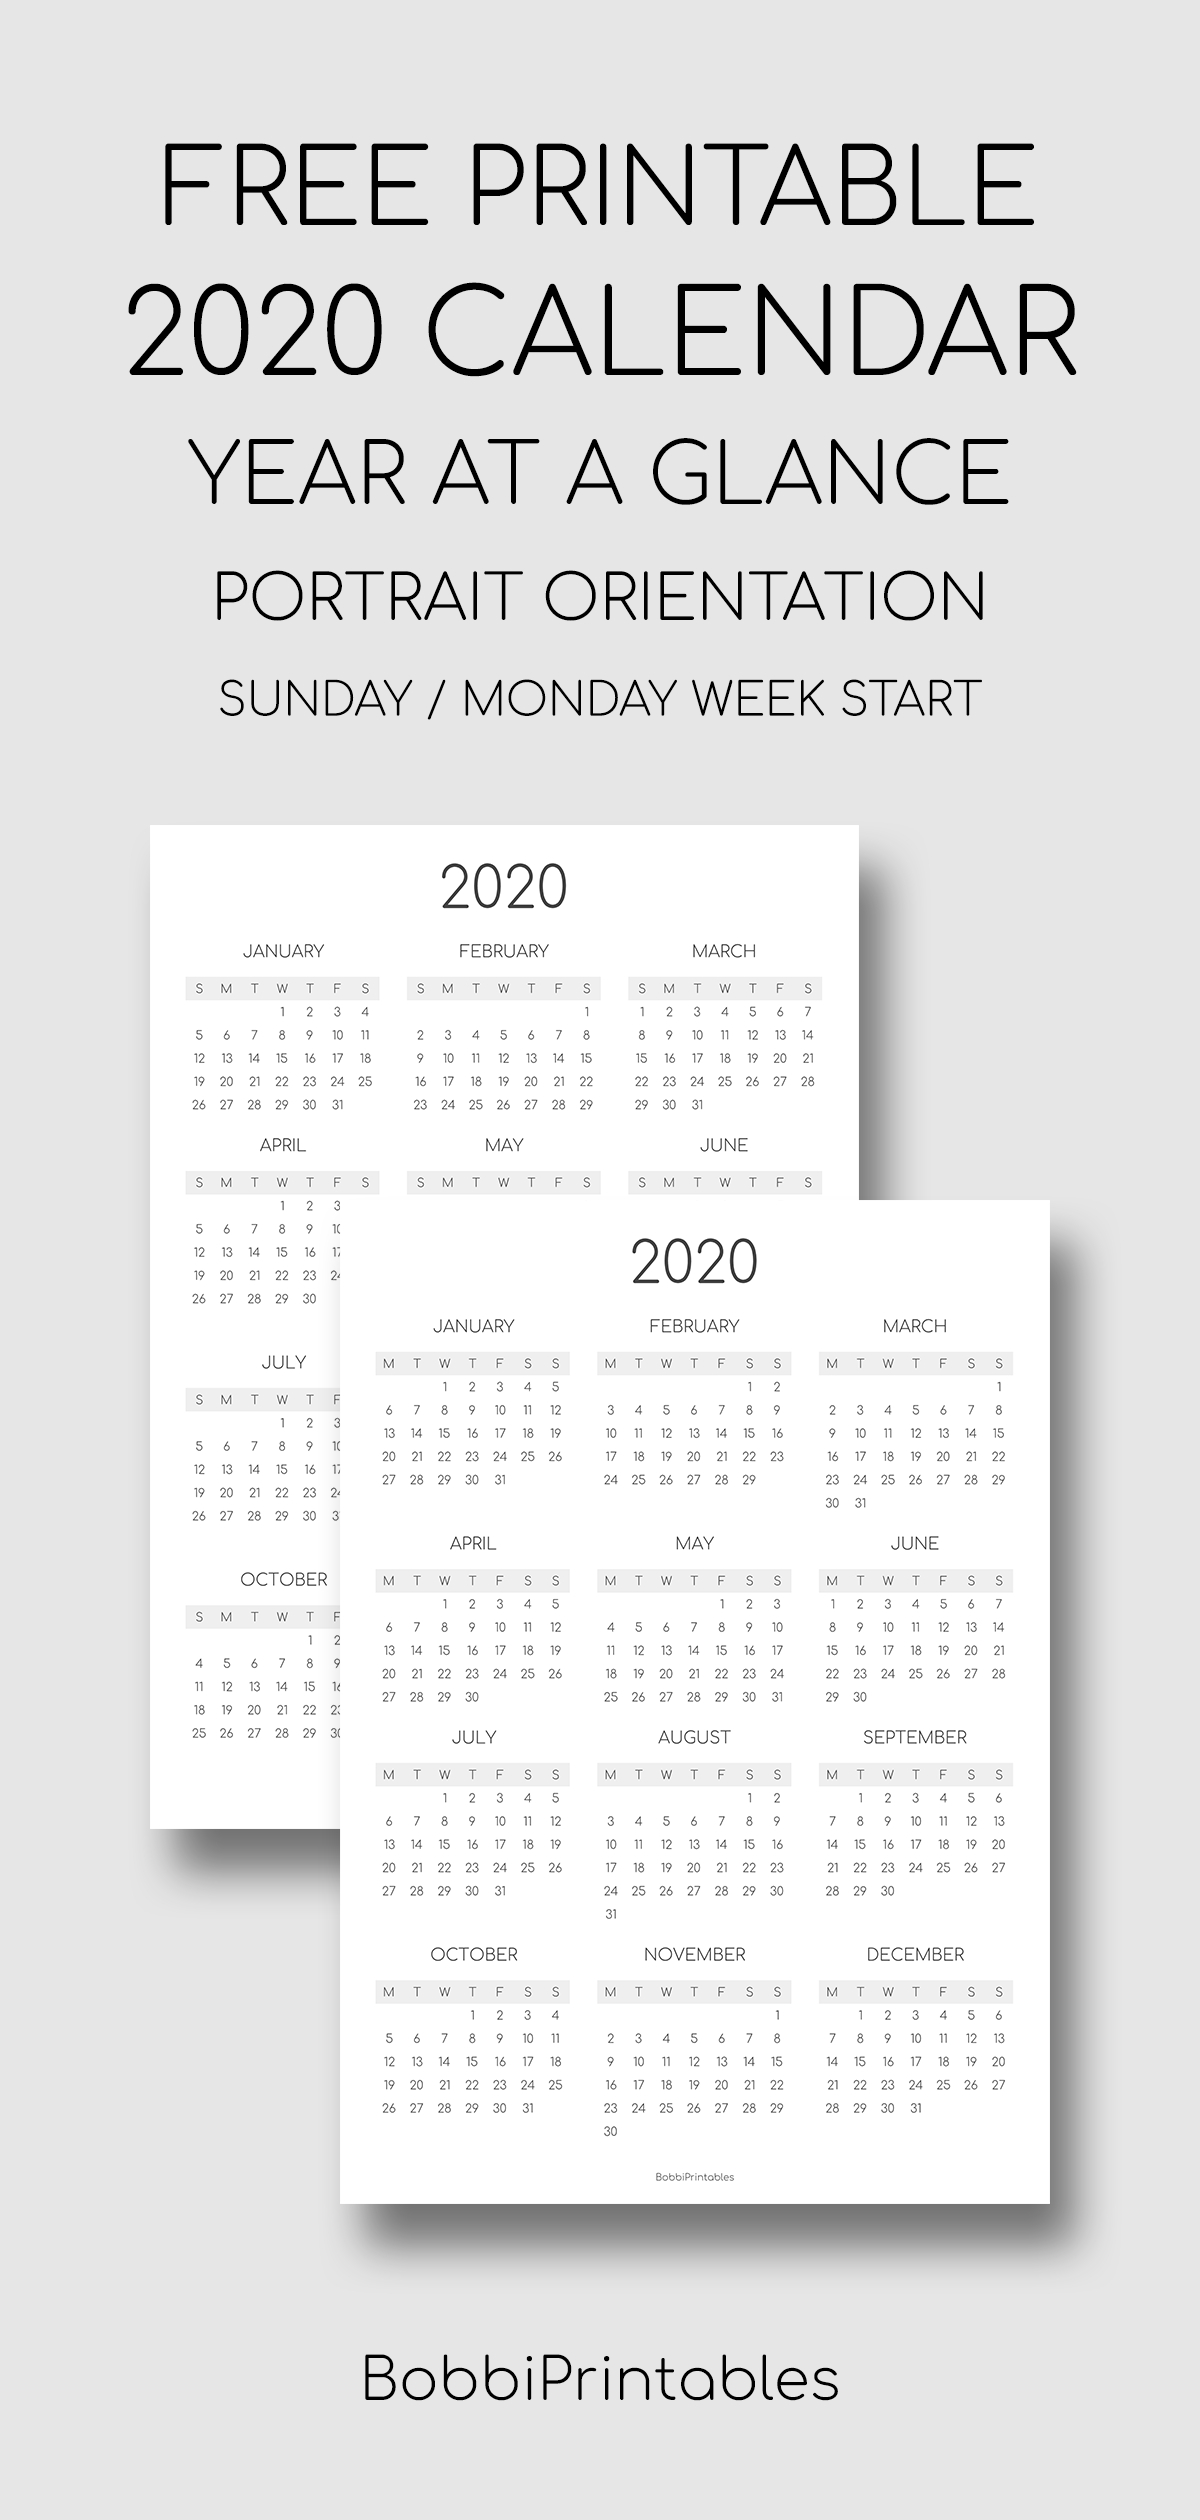 Printable 2020 Year At A Glance Calendar - Portrait within Year At A Glance Printable Calendar 2020